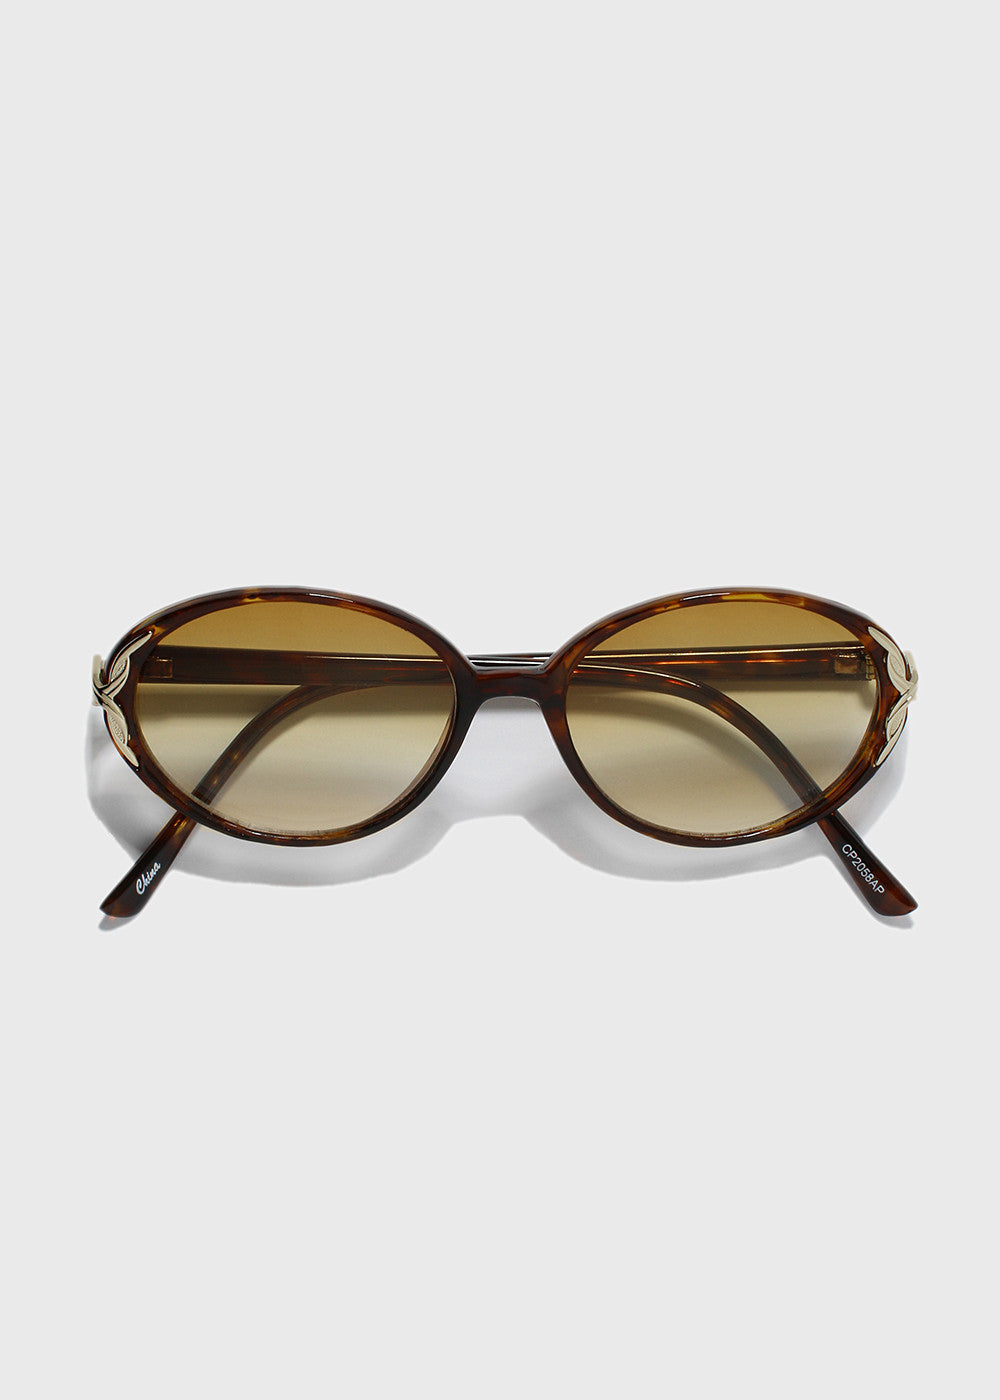 Oval Vintage Design Sunglasses- Tortoise